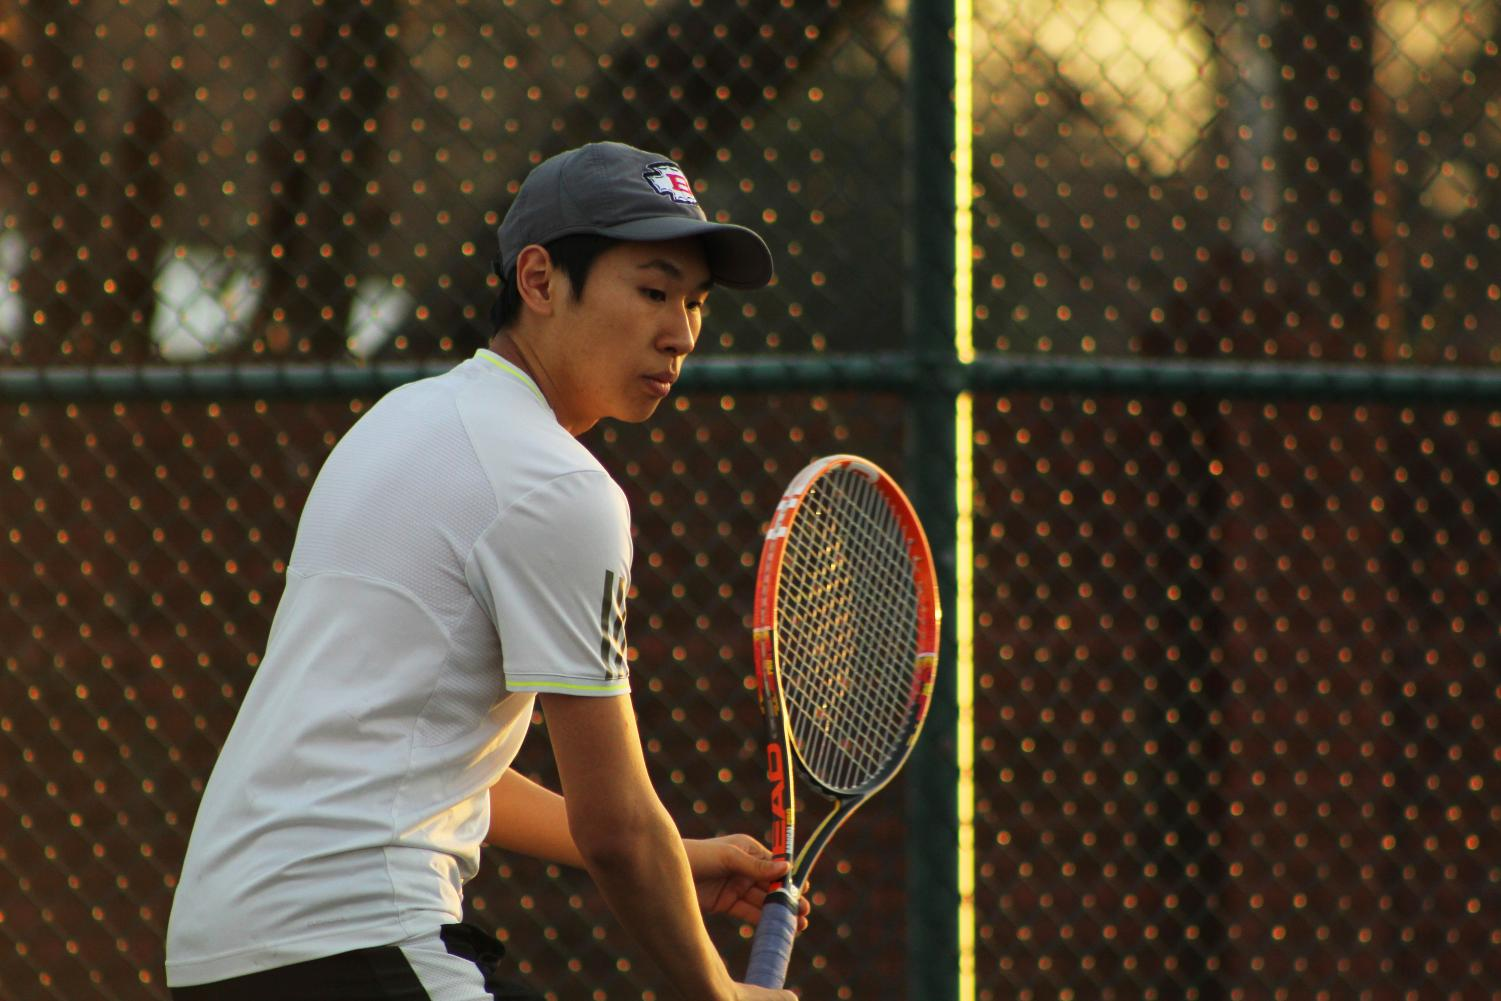 Junior Esmond Tsang concentrates as the ball is hit towards him.